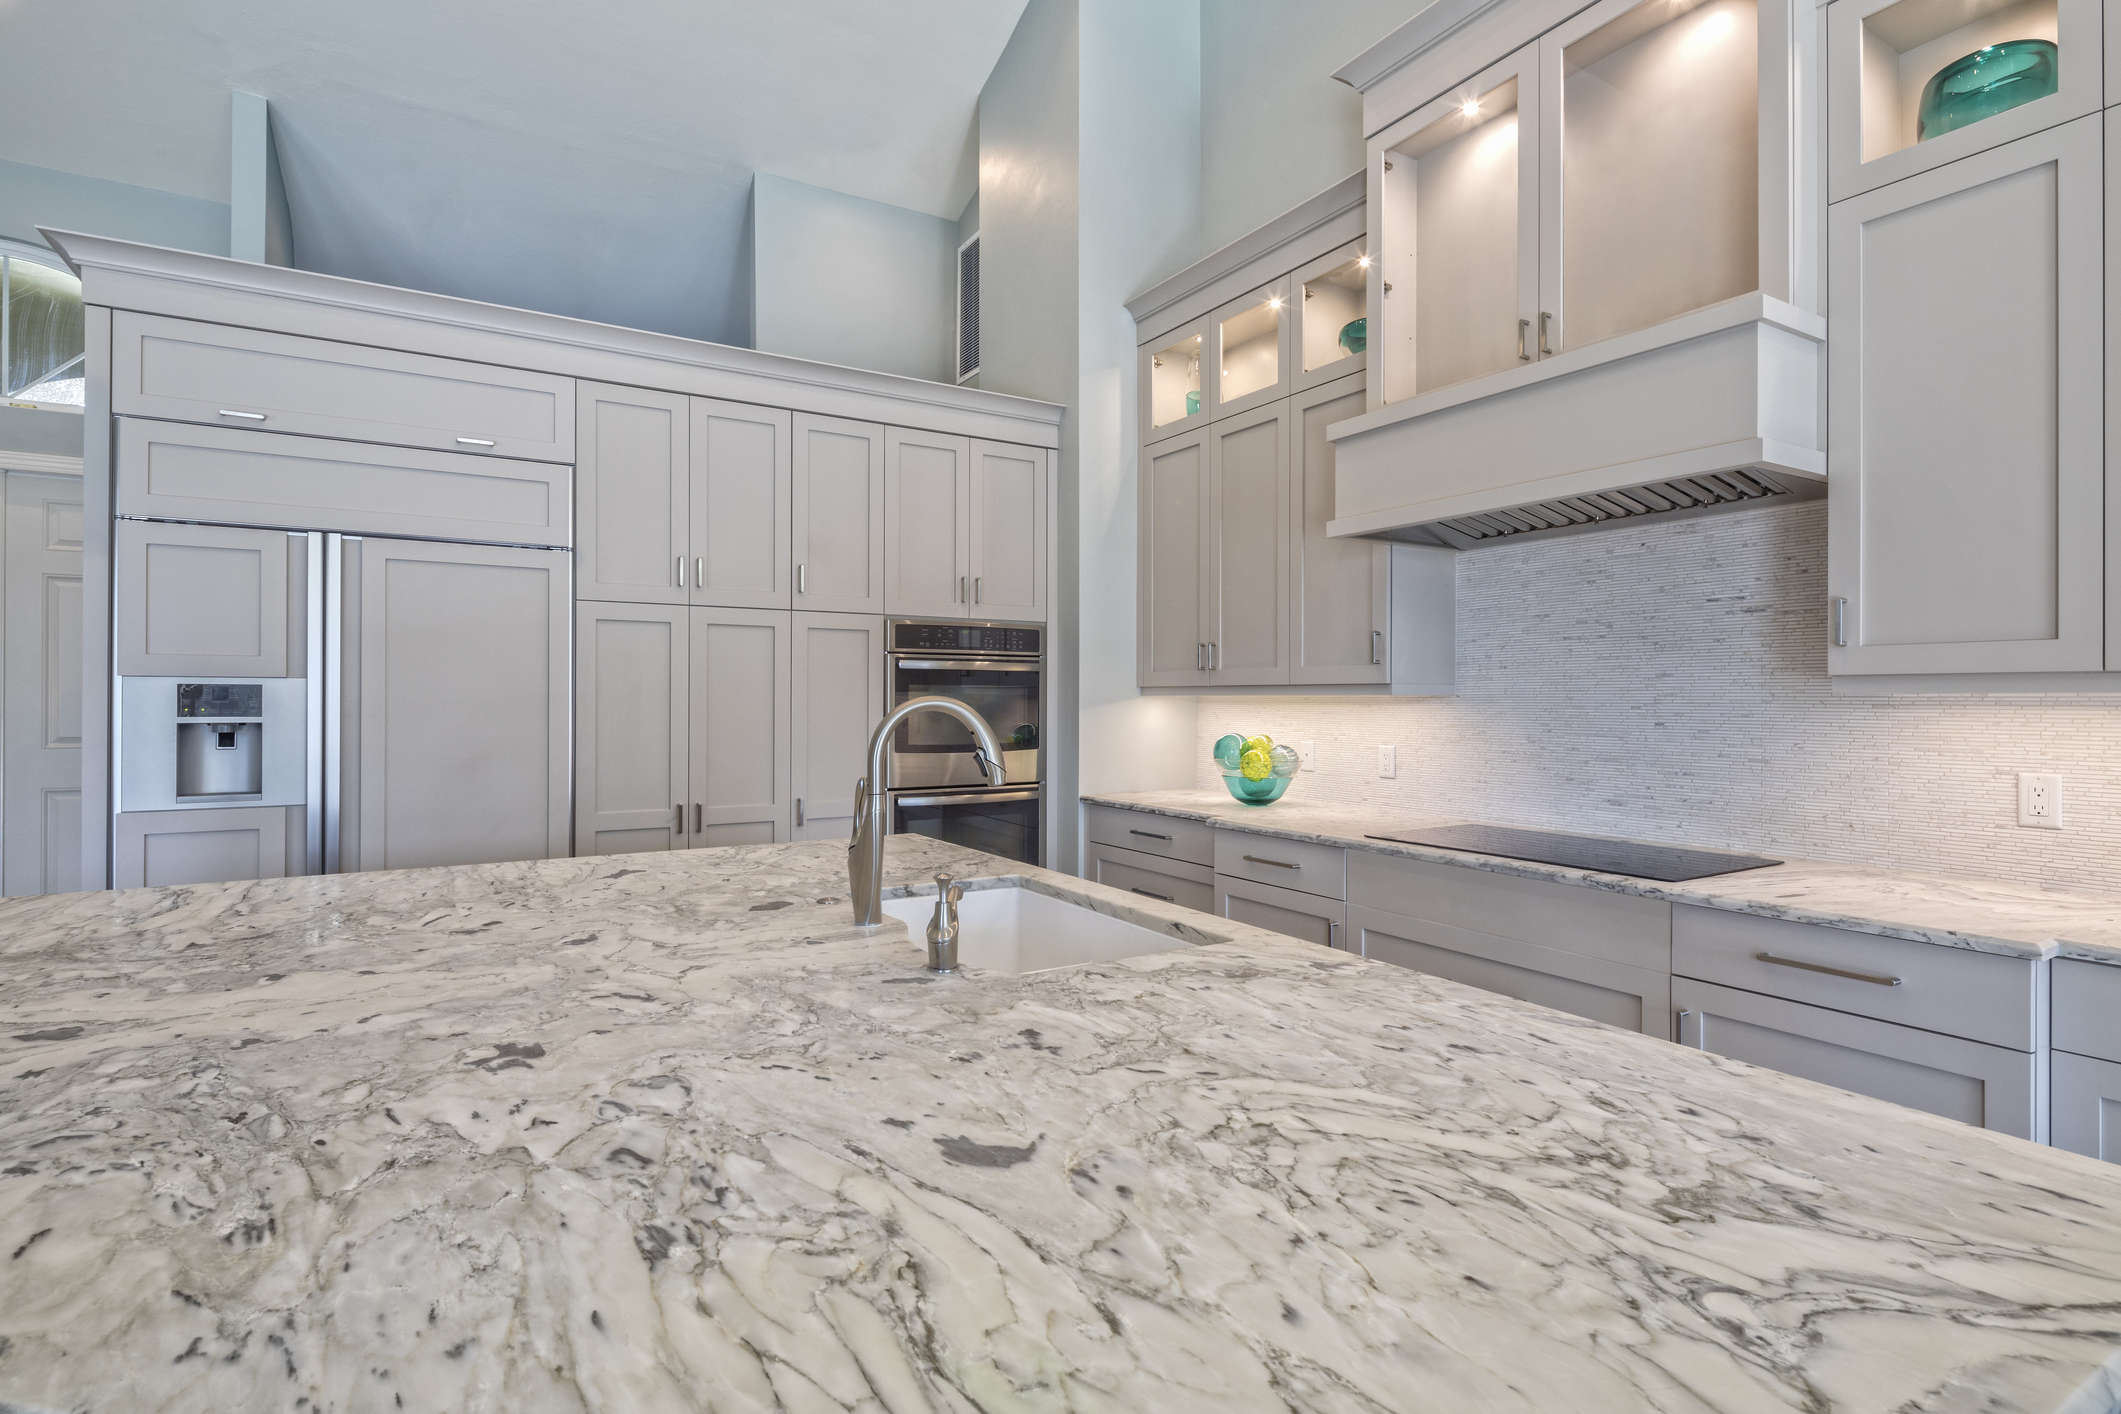 Kitchen Designer Custom Kitchen Cabinets In Laval Near Montreal And North Shore Club Cuisine Bcbg